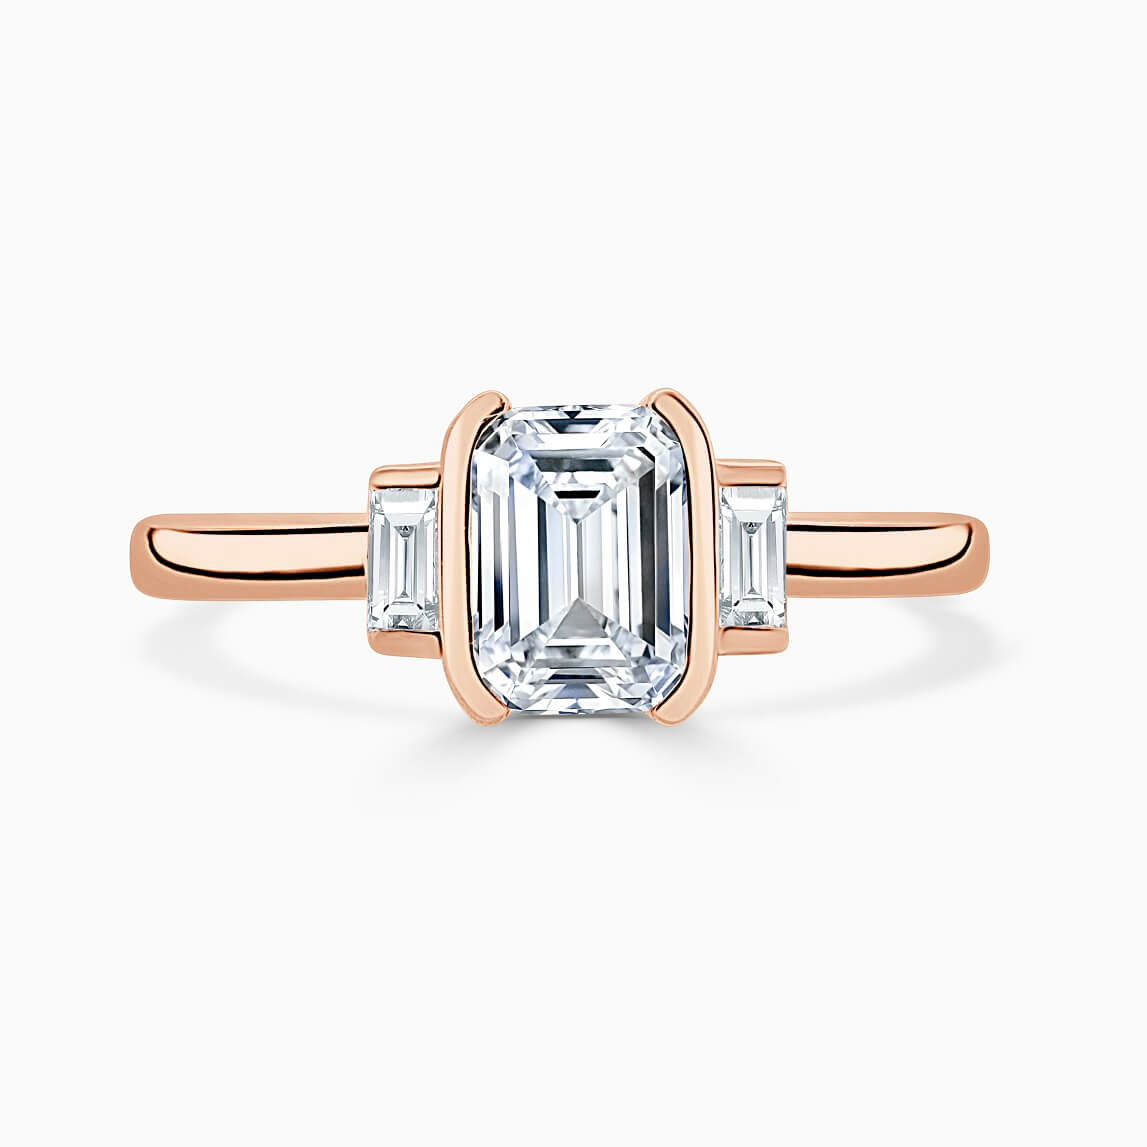 18ct Rose Gold Emerald Cut Art Deco 3 Stone With Baguettes Engagement Ring